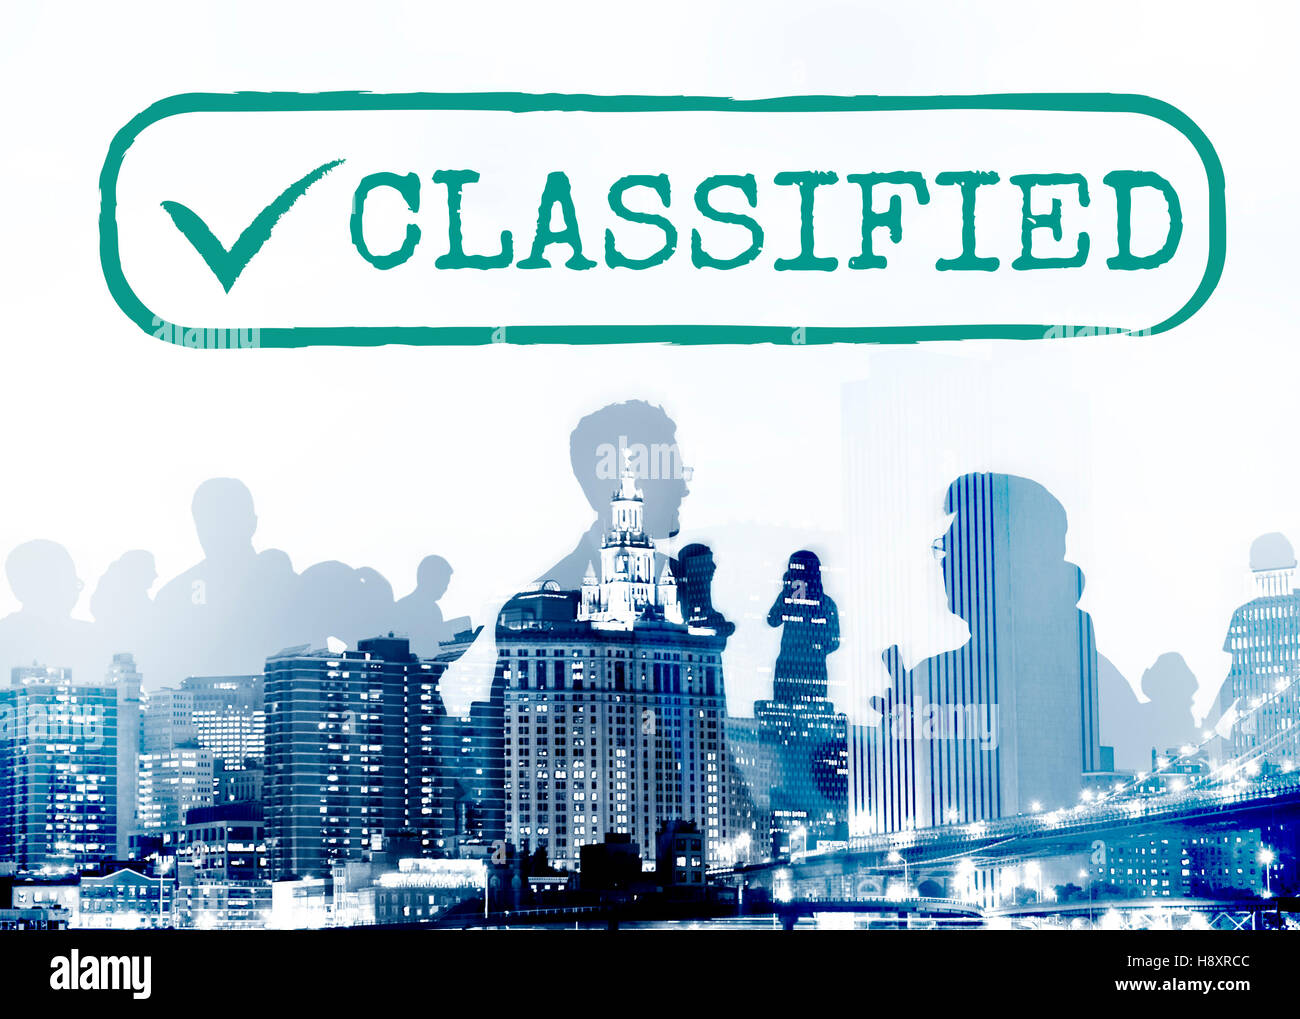 Classified Category Genre Kind Section Graphic Concept - Stock Image